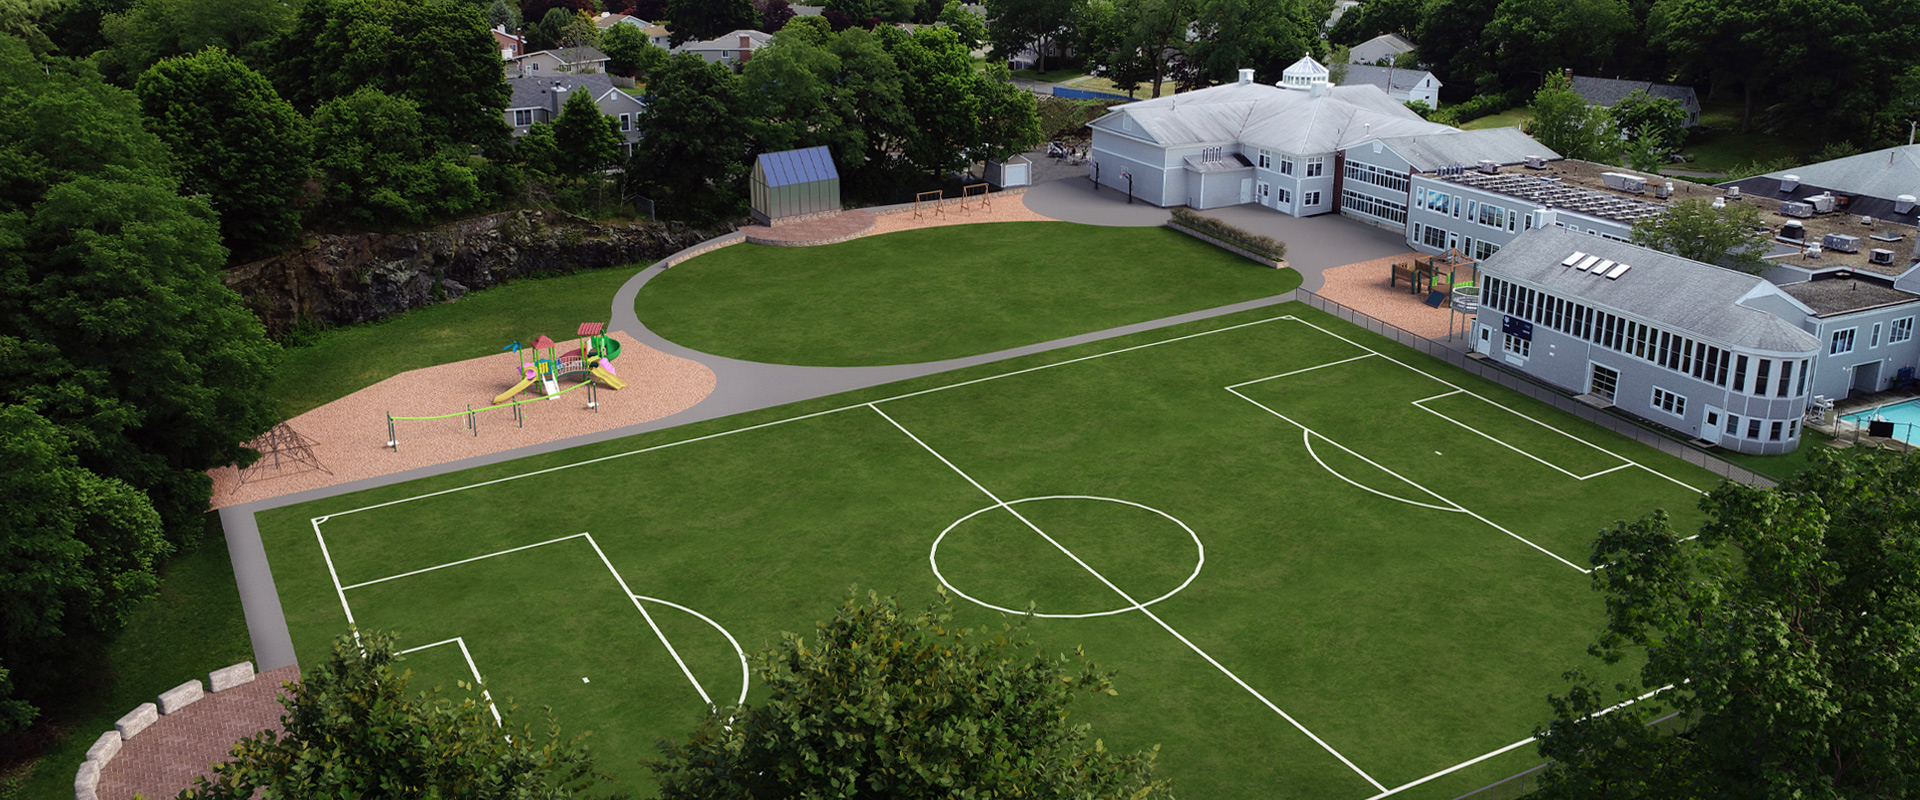 Tower School soccer filed and playground